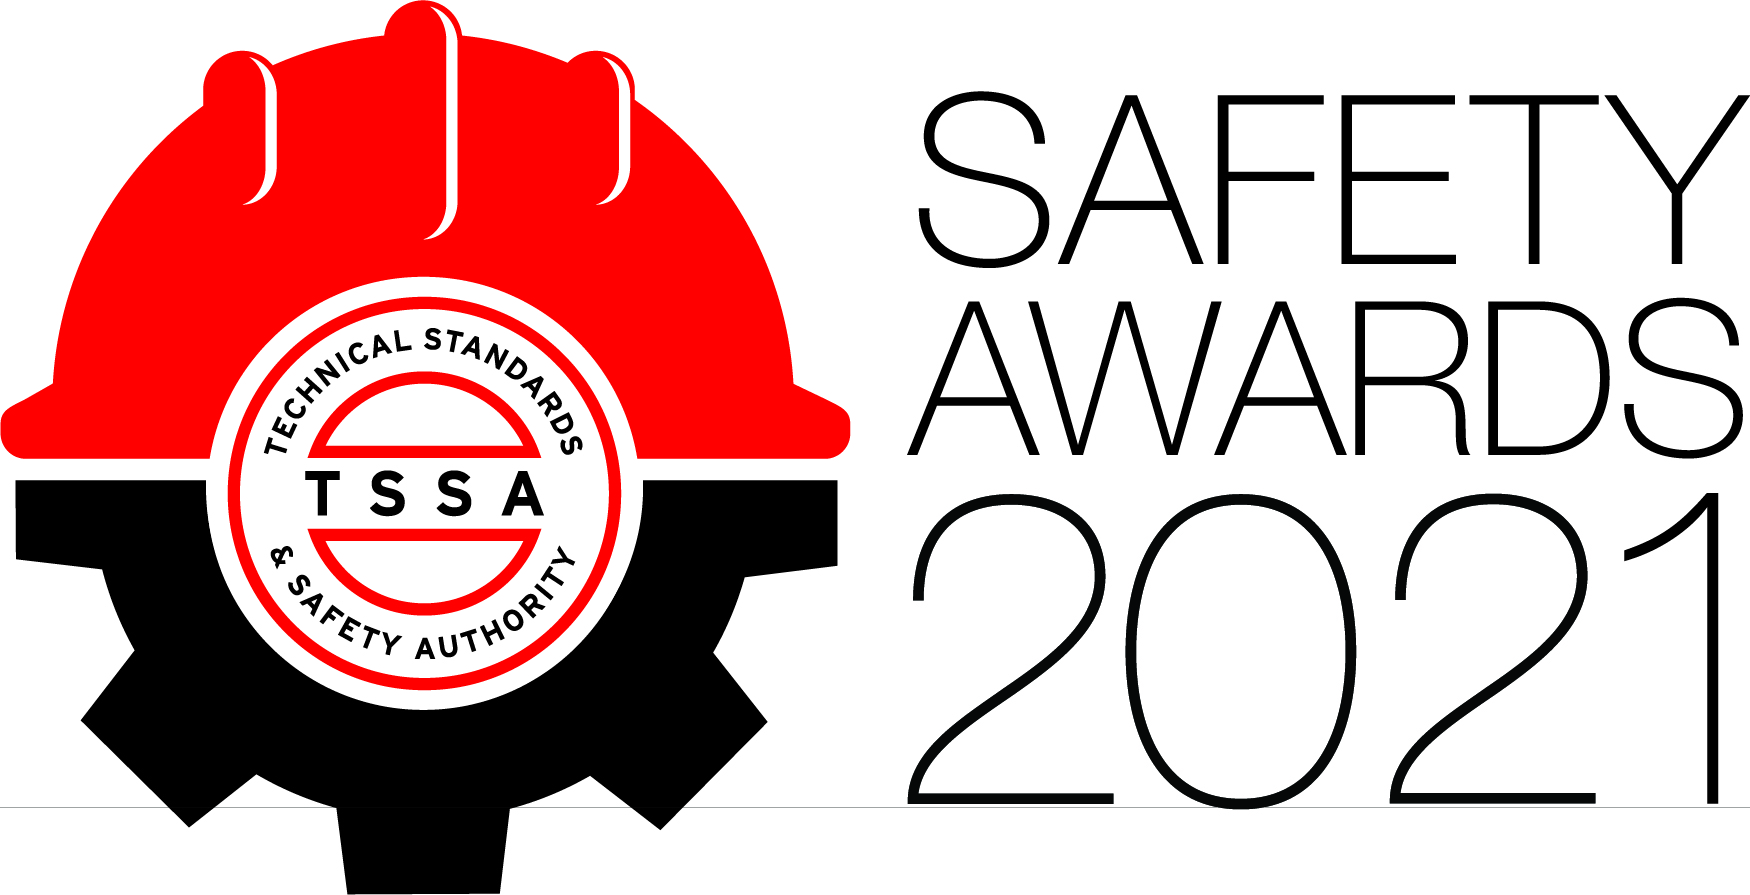 TSSA Safety Awards 2021 Logo